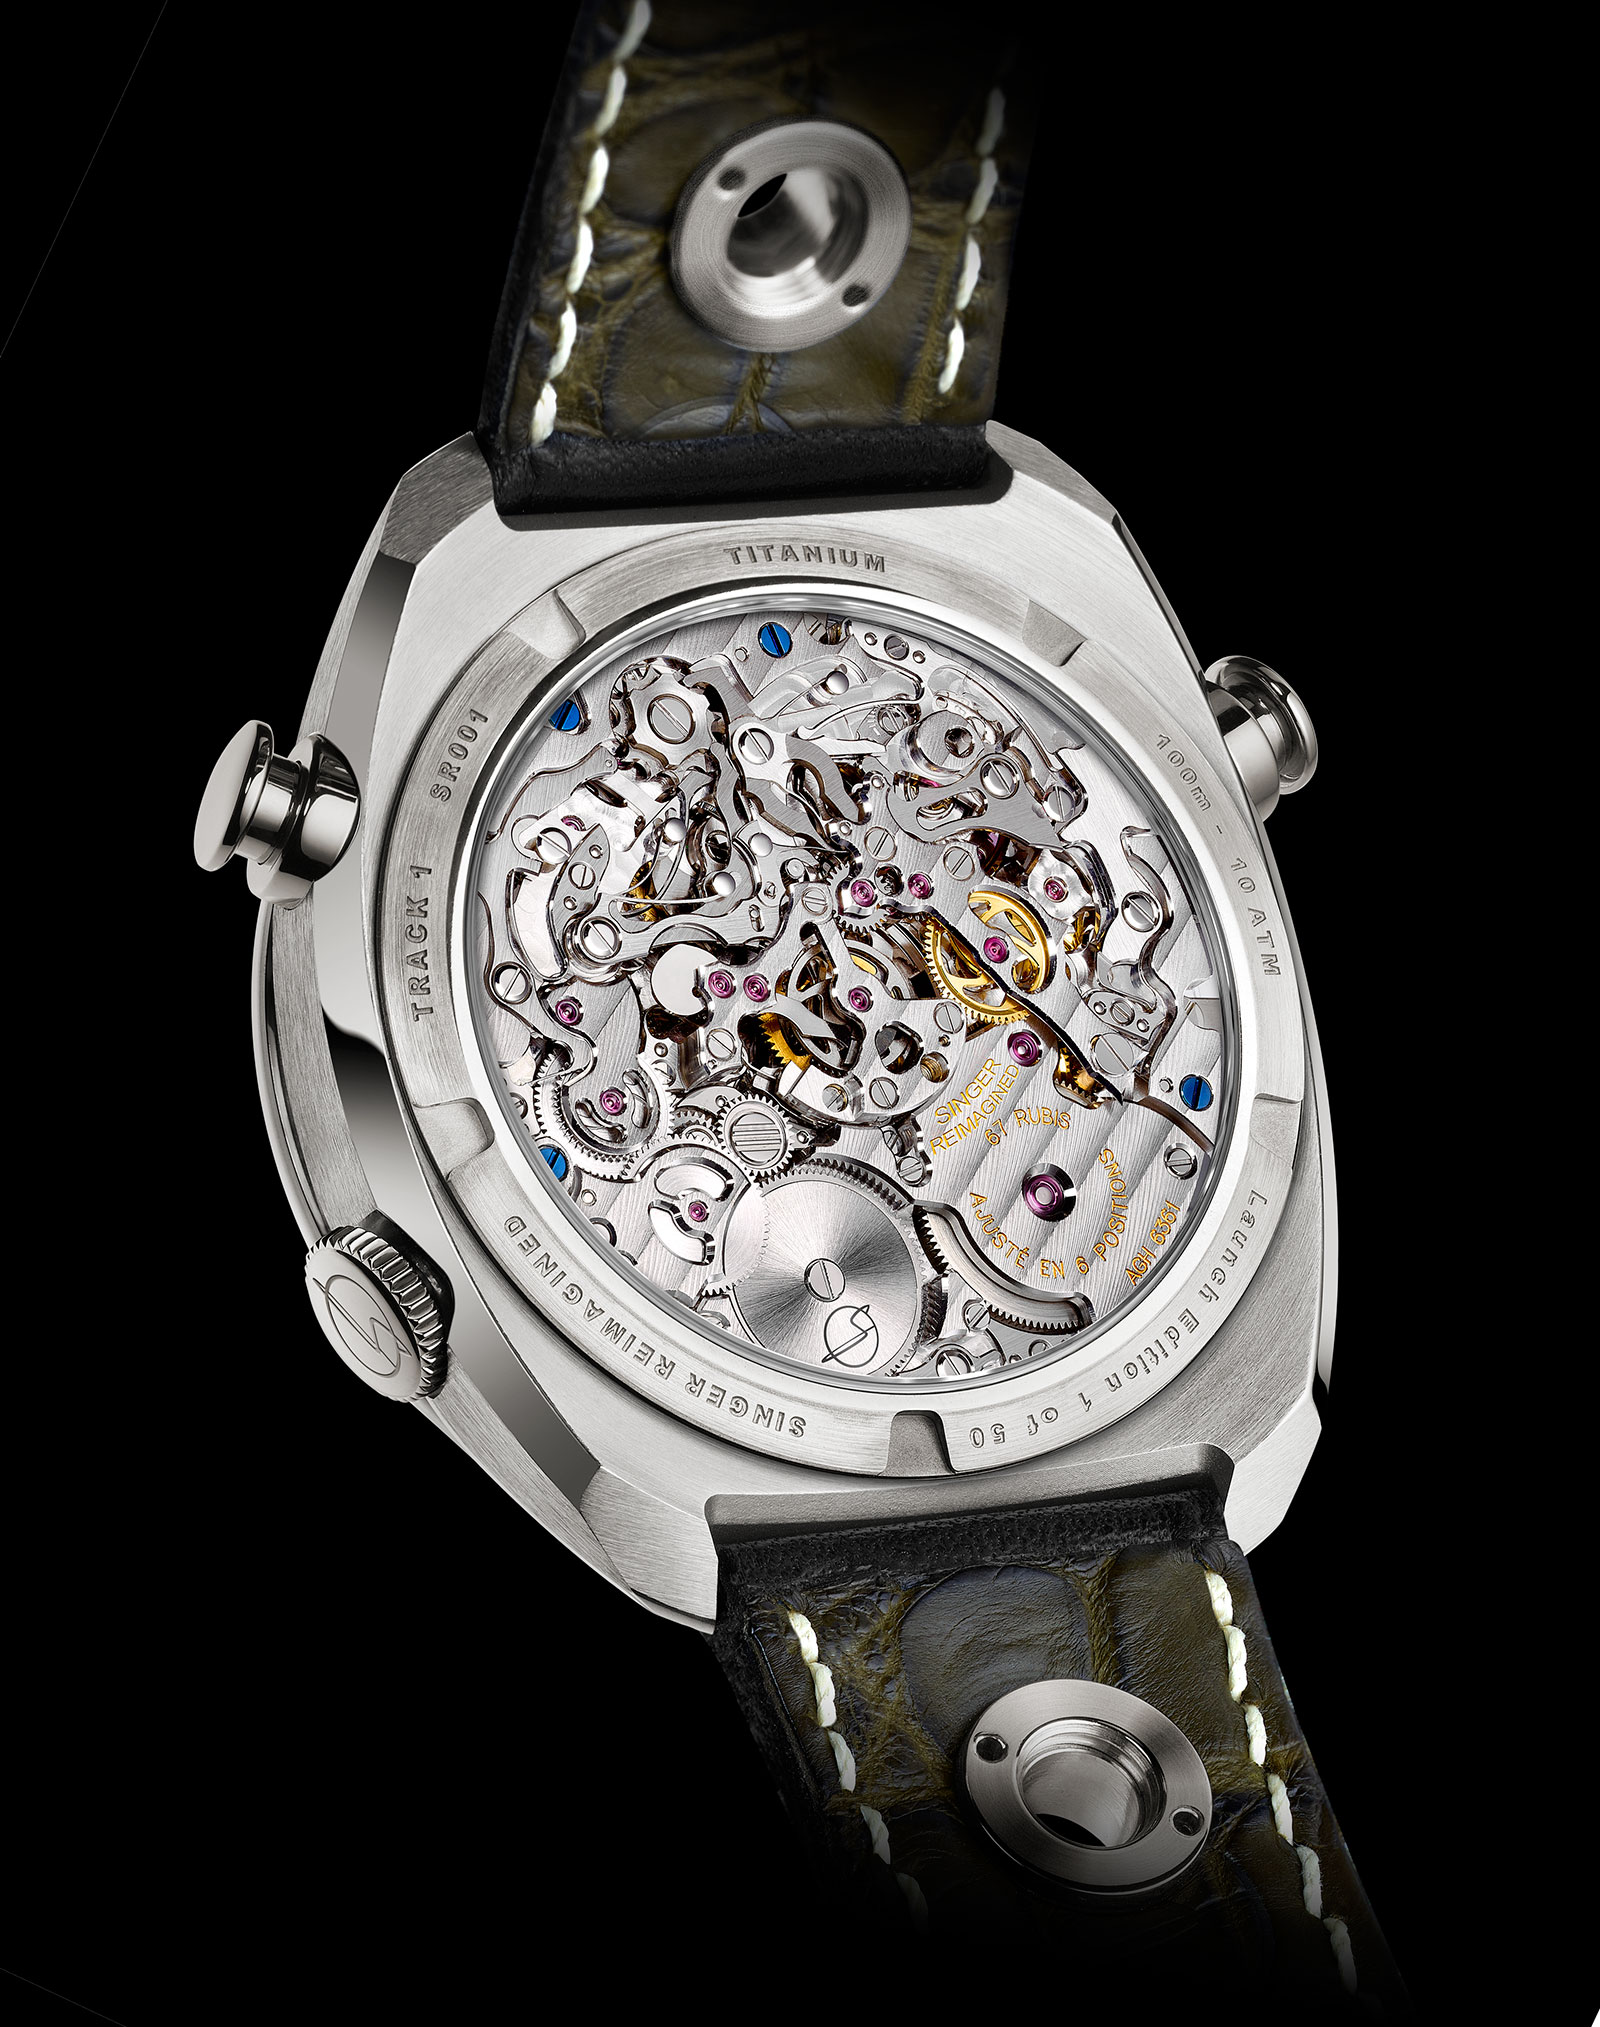 Singer Track 1 Chronograph Watch 7